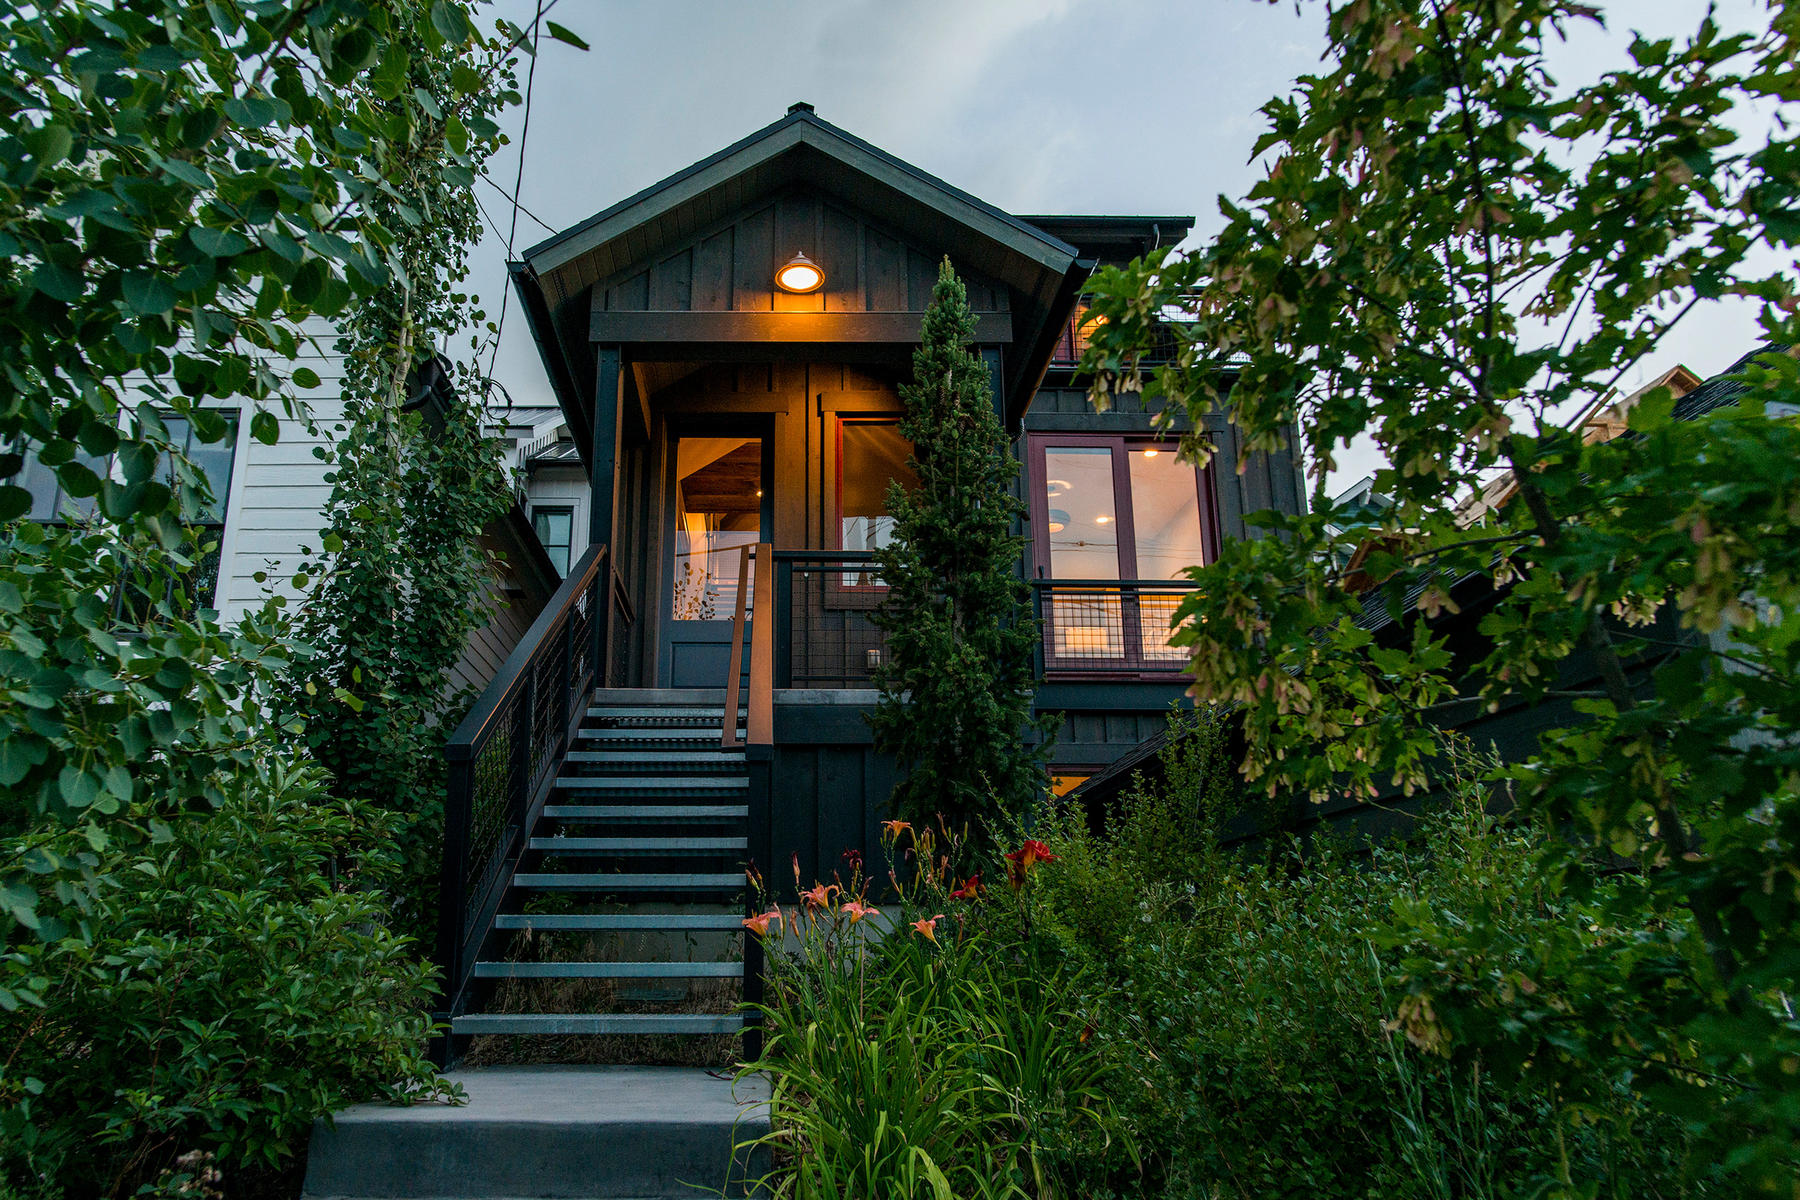 Single Family Home for Sale at Ultimate Old Town Retreat With Irreplaceable Setting Just Steps to the Ski Run 817 Norfolk Ave Park City, Utah 84060 United States